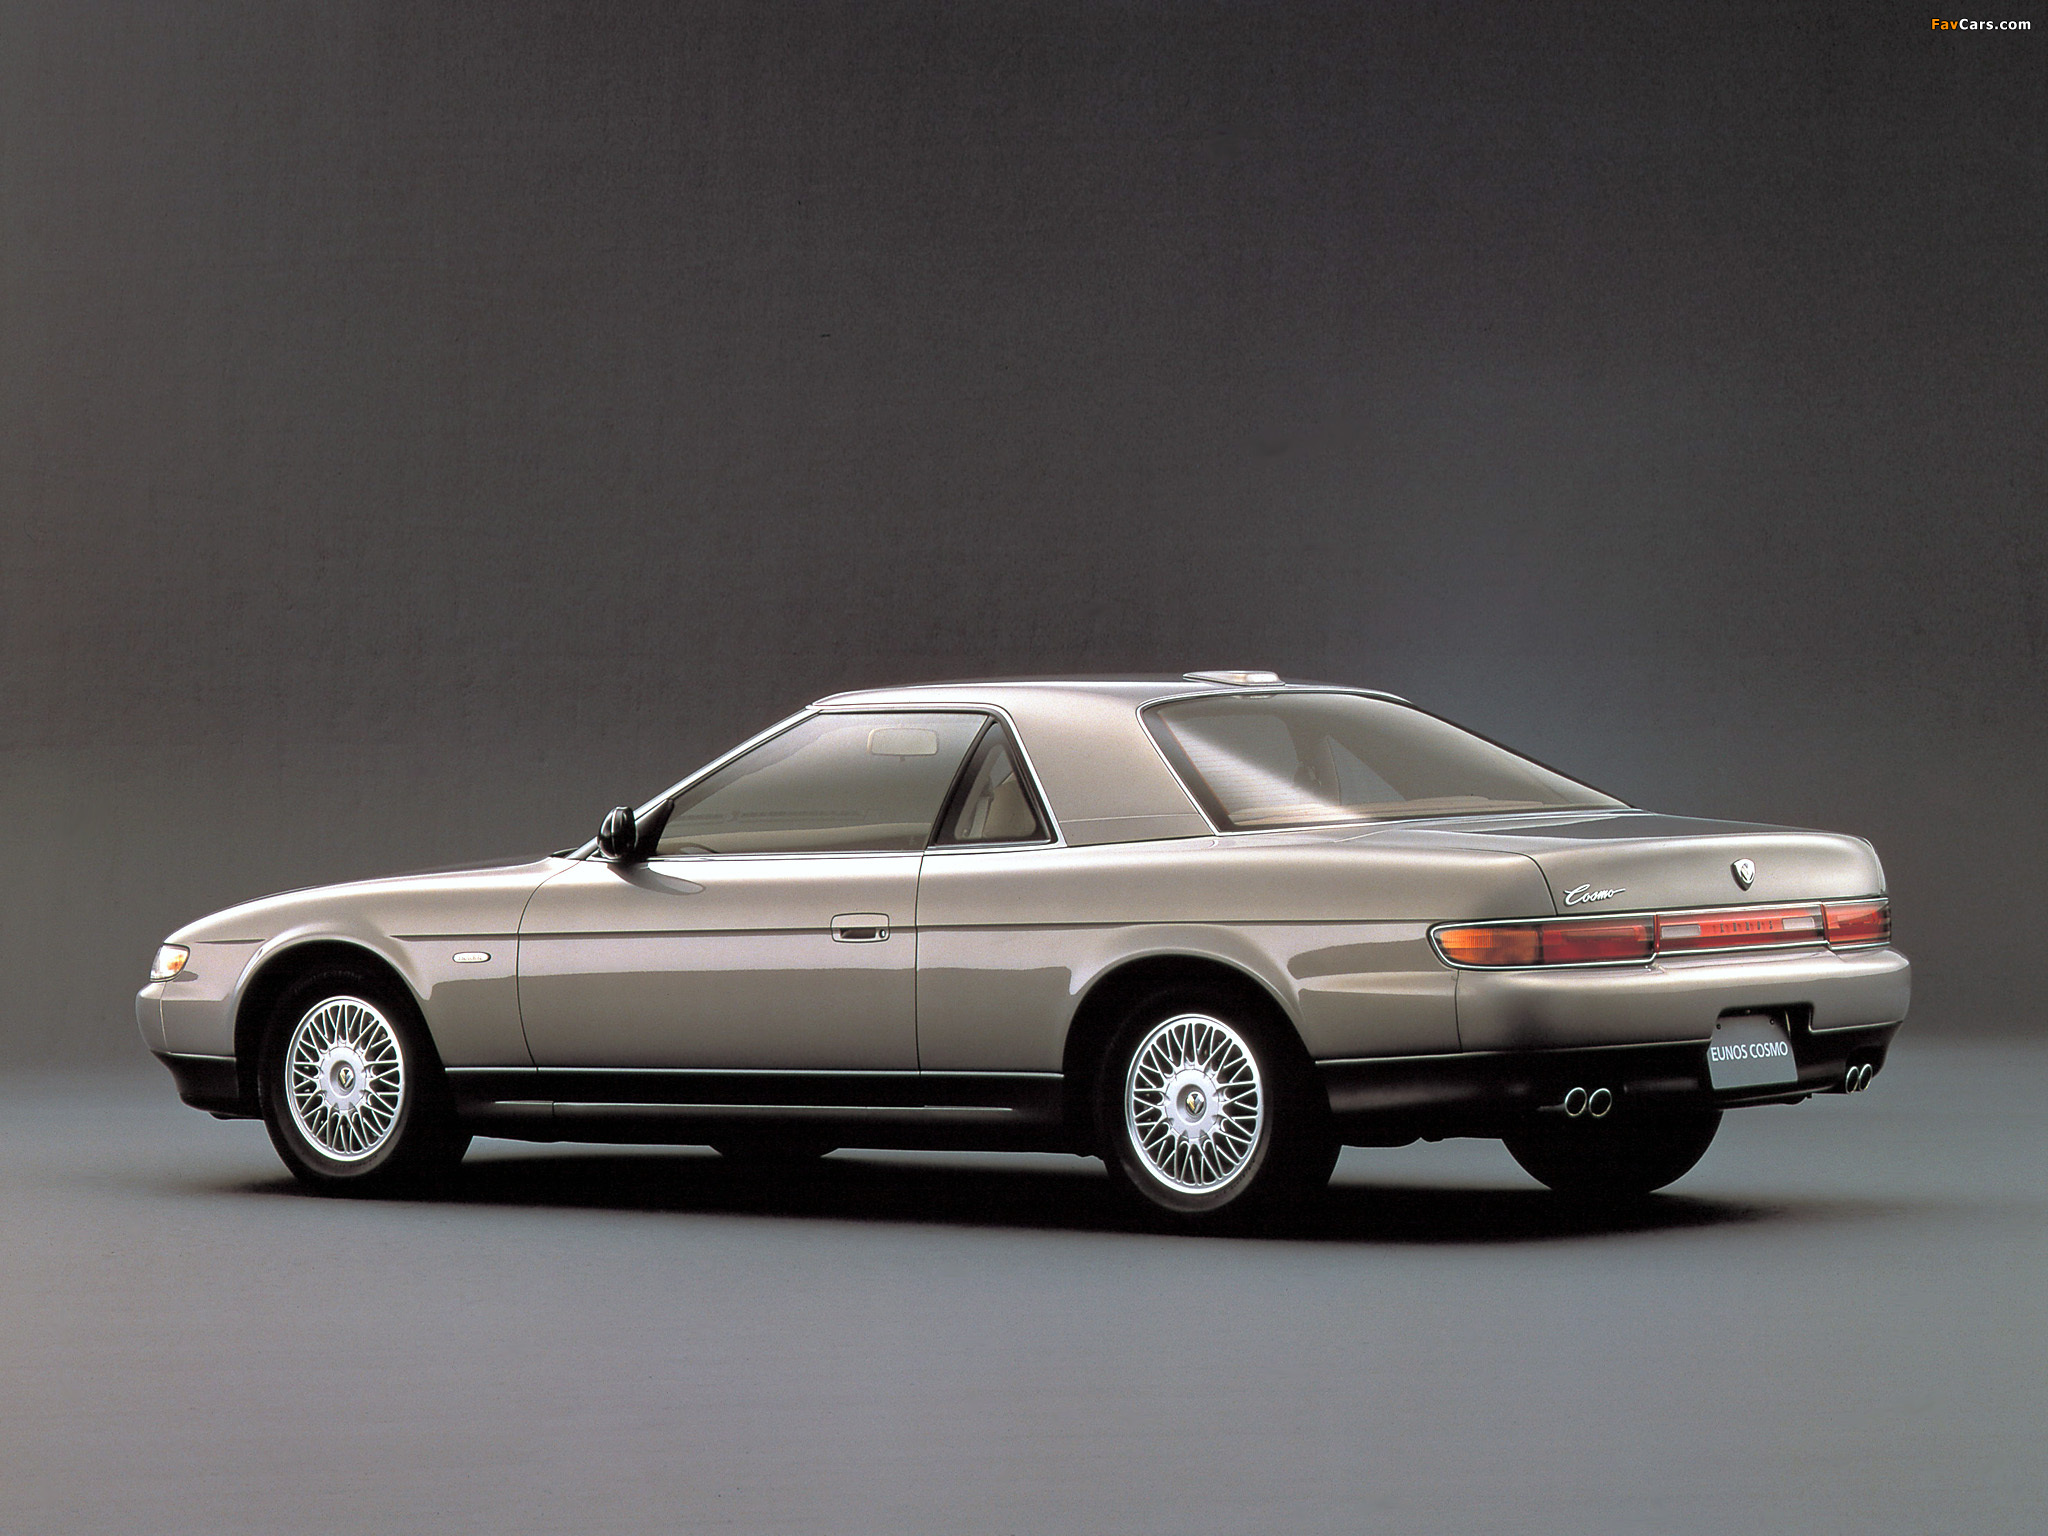 Mazda Eunos Cosmo Related Keywords & Suggestions - Mazda Eunos Cosmo Long Tail Keywords